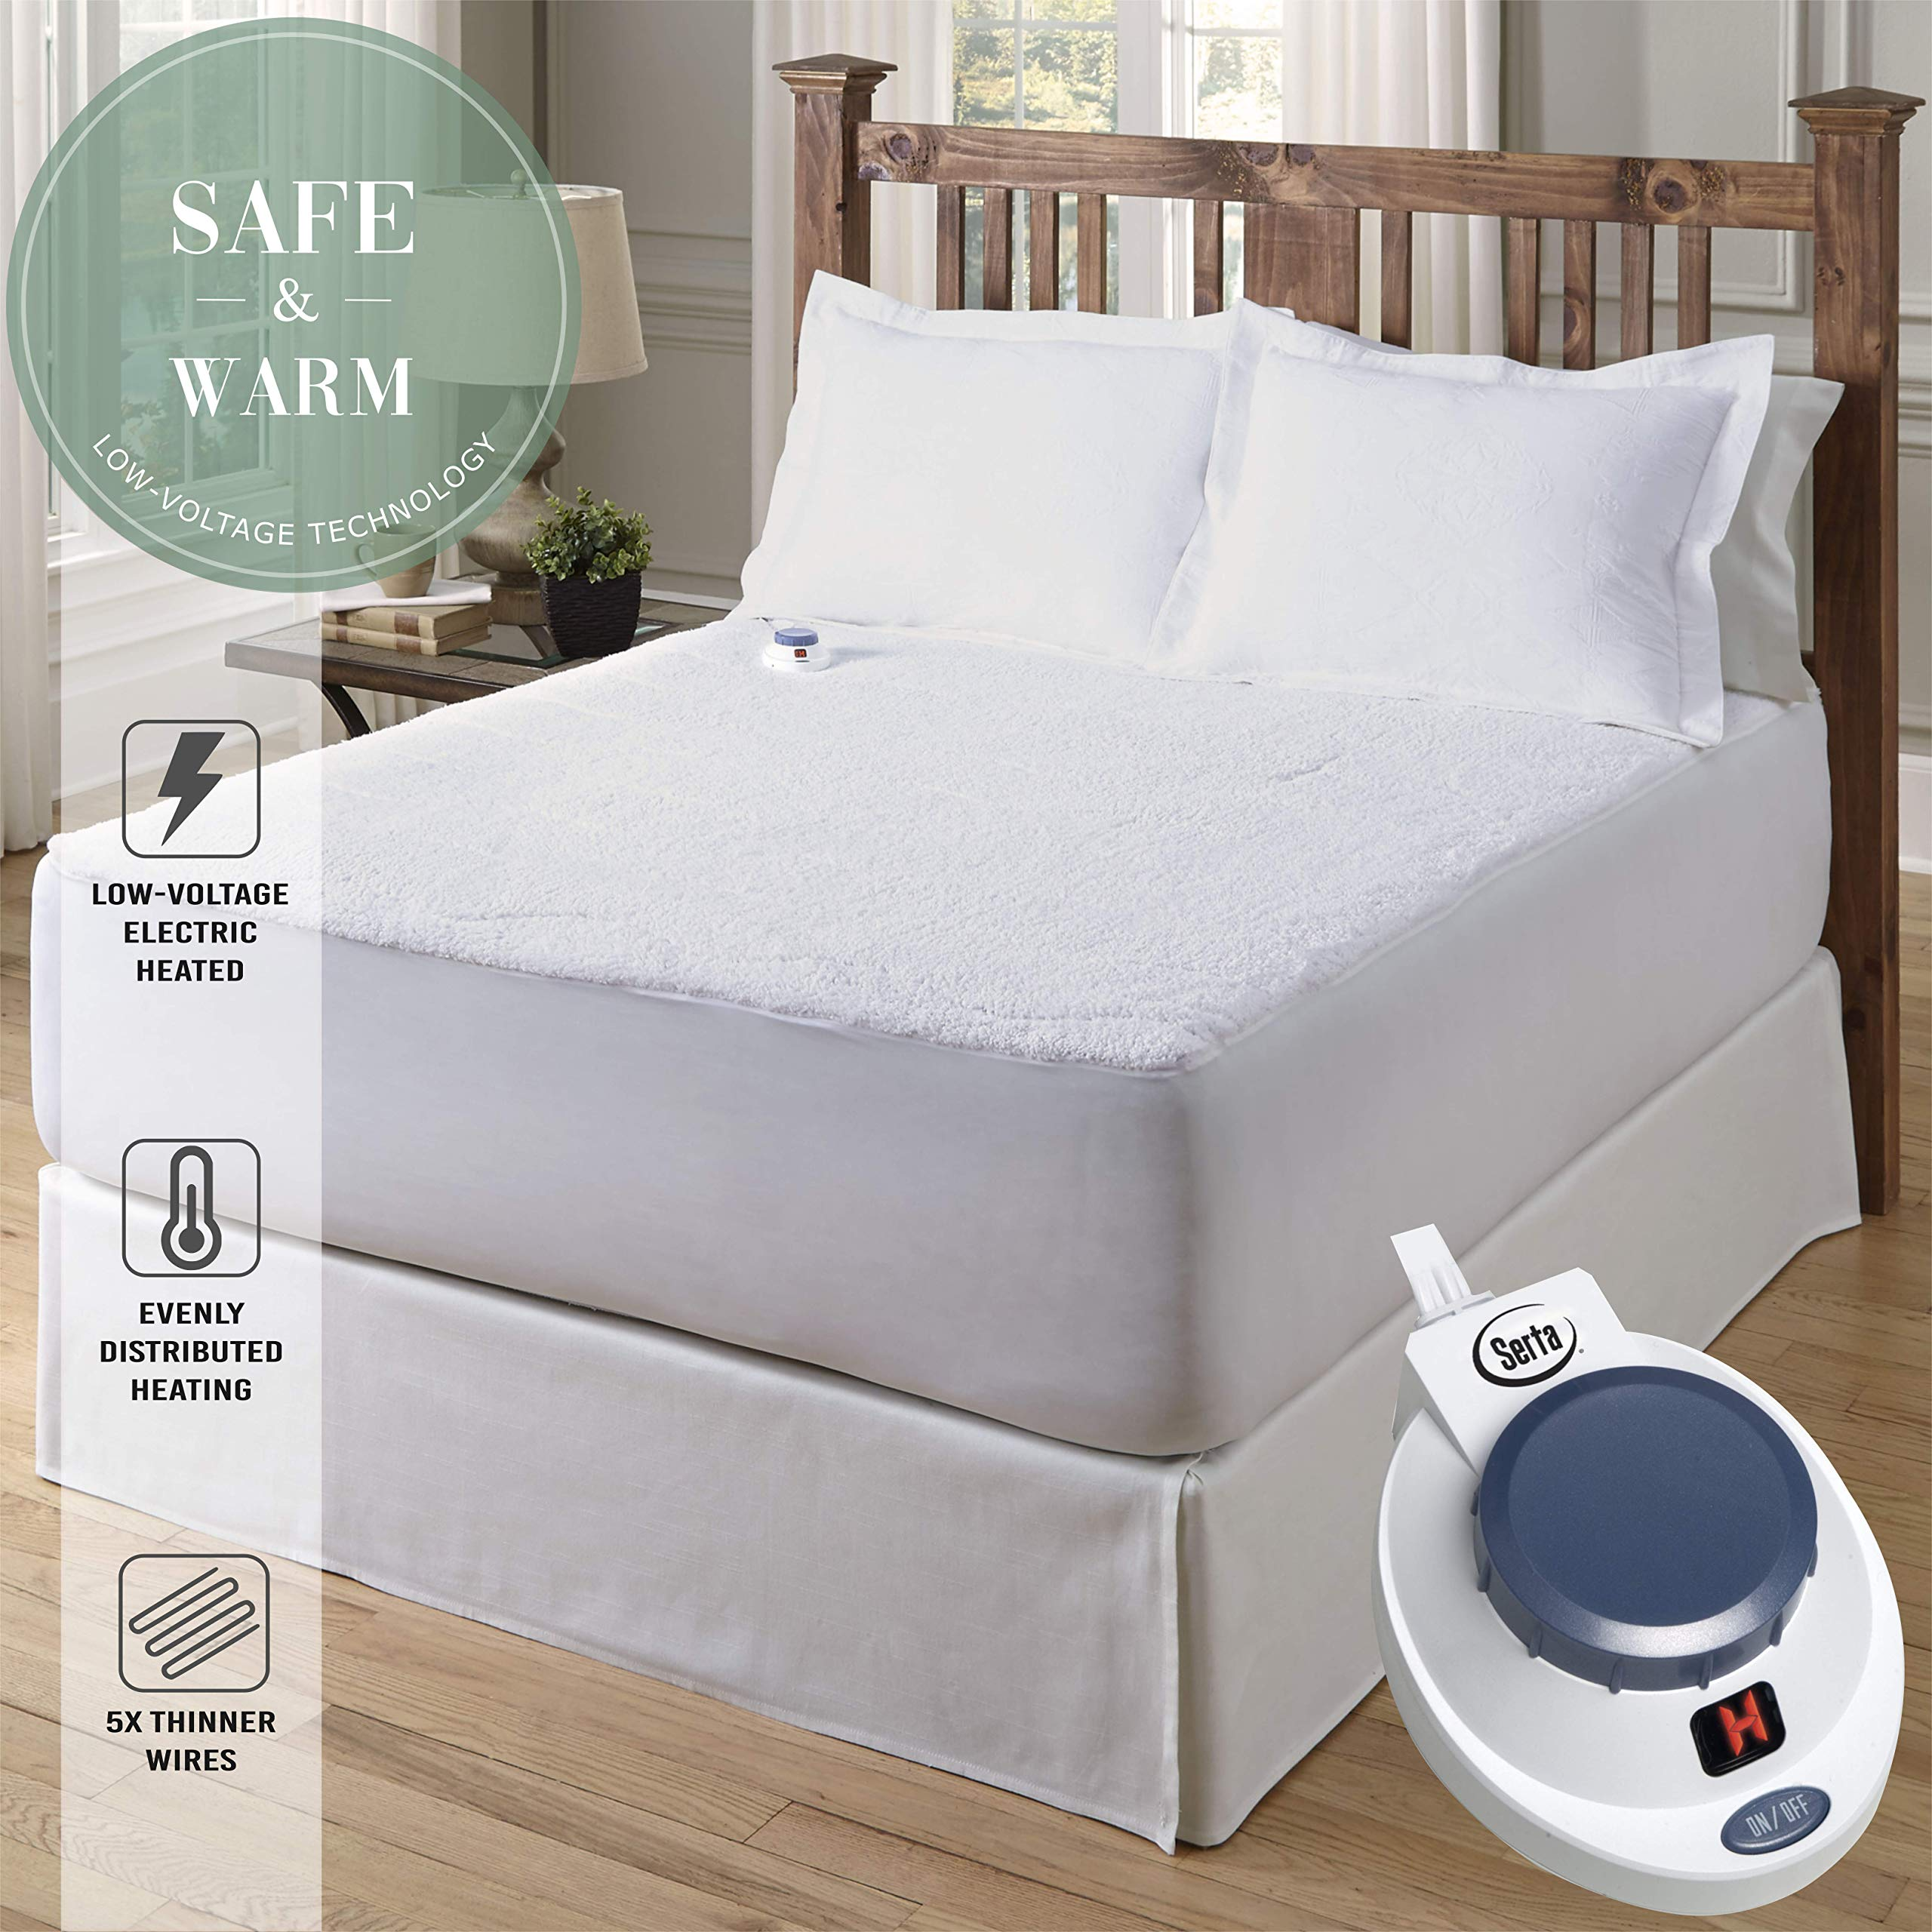 Serta | Luxurious Sherpa Heated Electric Mattress Pad with Safe & Warm Low-Voltage Technology (Twin)